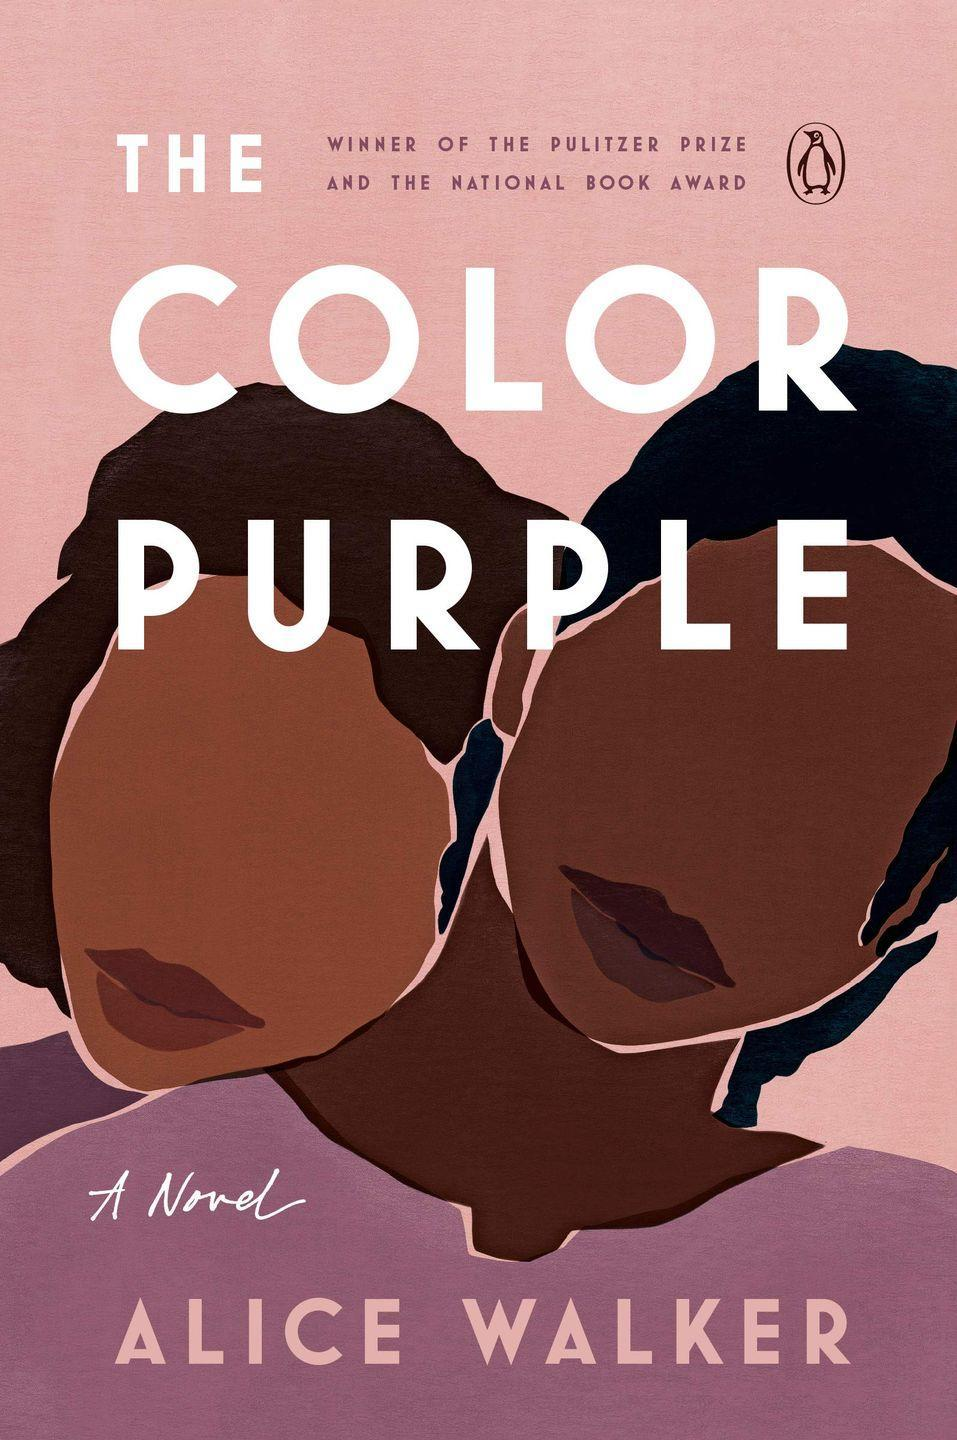 """<p><strong><em>The Color Purple </em>by Alice Walker</strong></p><p>$13.99 <a class=""""link rapid-noclick-resp"""" href=""""https://www.amazon.com/Color-Purple-Novel-Alice-Walker/dp/0143135694/ref=tmm_pap_swatch_0?_encoding=UTF8&tag=syn-yahoo-20&ascsubtag=%5Bartid%7C10050.g.35990784%5Bsrc%7Cyahoo-us"""" rel=""""nofollow noopener"""" target=""""_blank"""" data-ylk=""""slk:BUY NOW"""">BUY NOW</a></p><p>A powerful novel about domestic and sexual abuse, <em>The Color Purple</em> details the lives of African American women in rural Georgia in the early 20th century. </p><p>Readers will be taken on a journey through these women's pain, companionship, and resilience. It won a <em>Pulitzer Prize</em> in 1983 and was later adapted into a movie and a musical. </p>"""